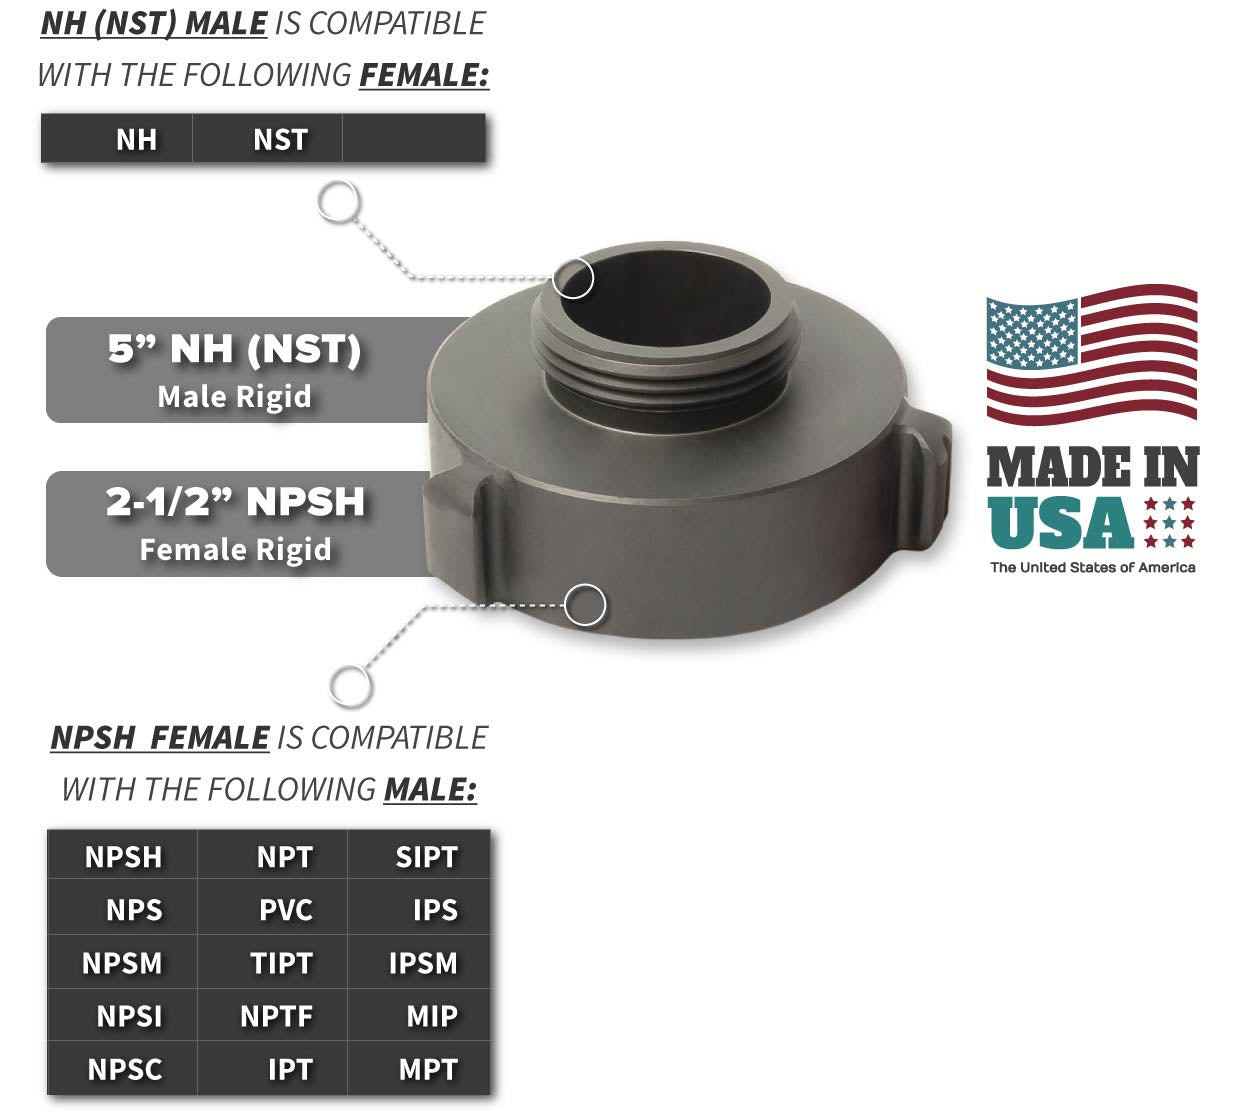 2.5 Inch NPSH Female x 5 Inch NH-NST Male Compatibility Thread Chart